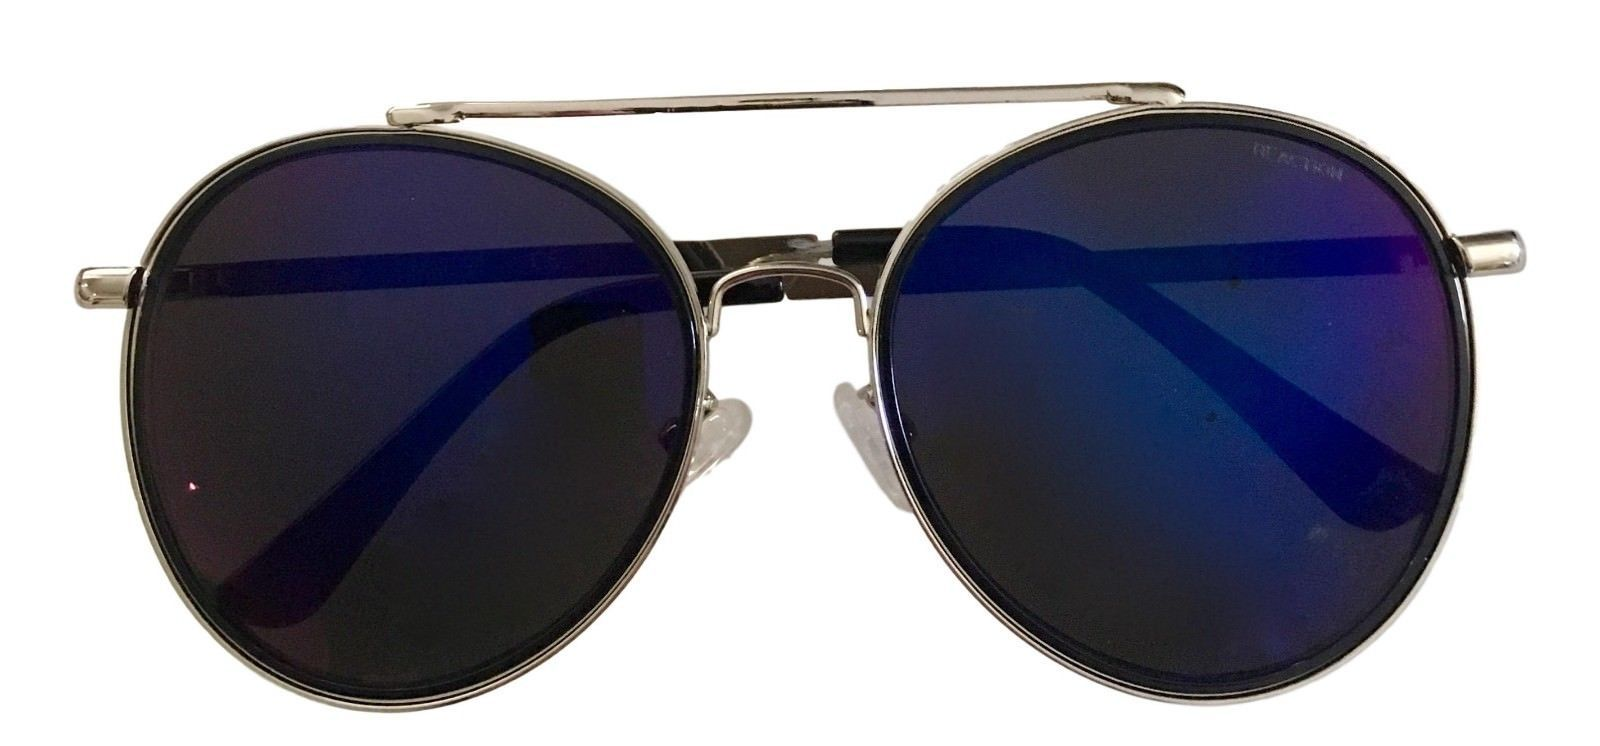 Kenneth Cole Reaction Mens Sunglass Round Silver Metal Blue Flash KC1313 10X image 4